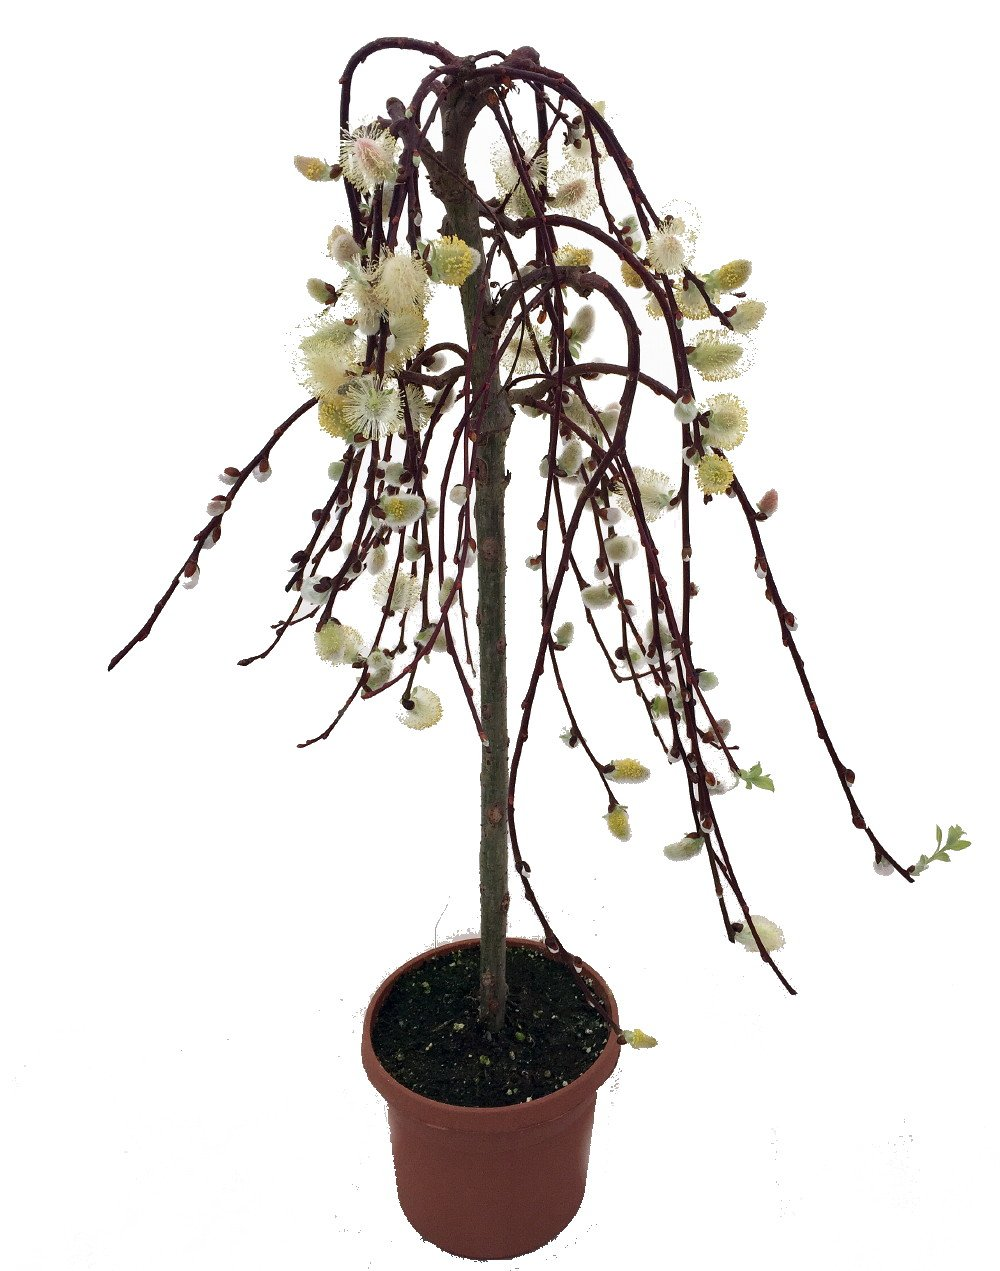 Amazon tree of enchantment mini weeping pussy willow tree amazon tree of enchantment mini weeping pussy willow tree bonsai or outdoors 6 pot tree plants garden outdoor biocorpaavc Image collections